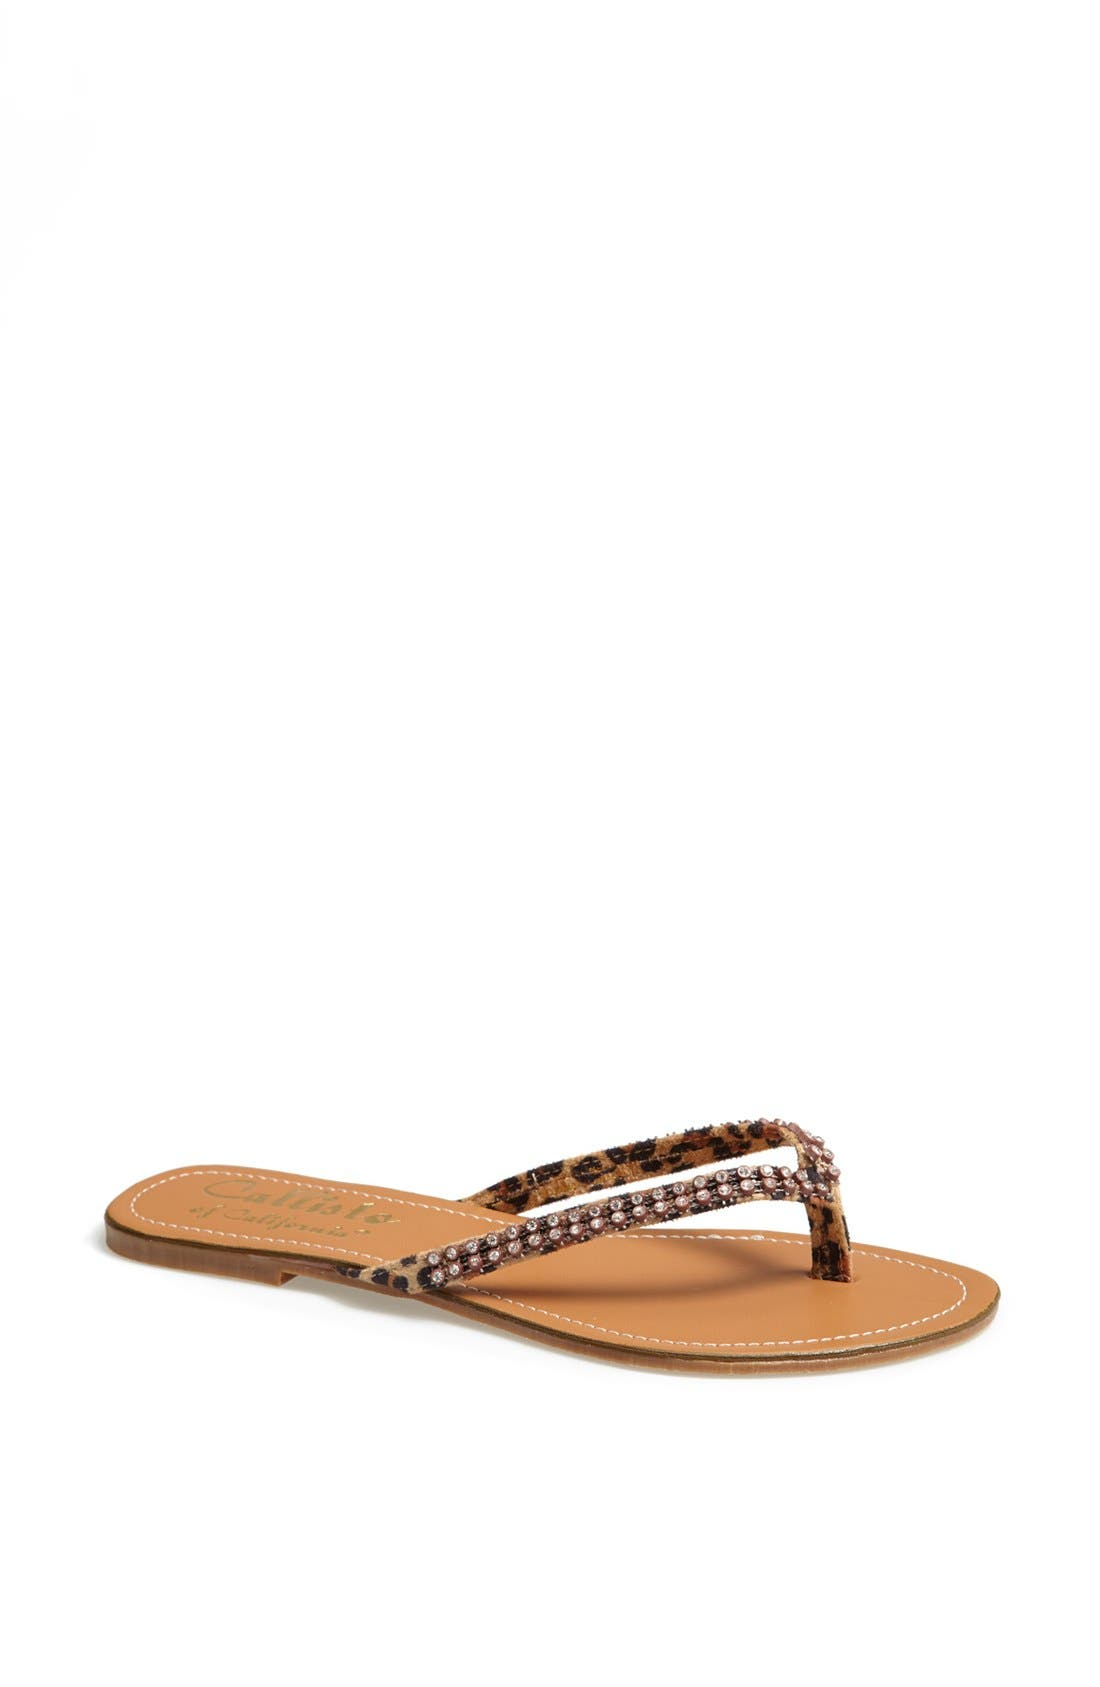 Alternate Image 1 Selected - Callisto 'Keiki' Sandal